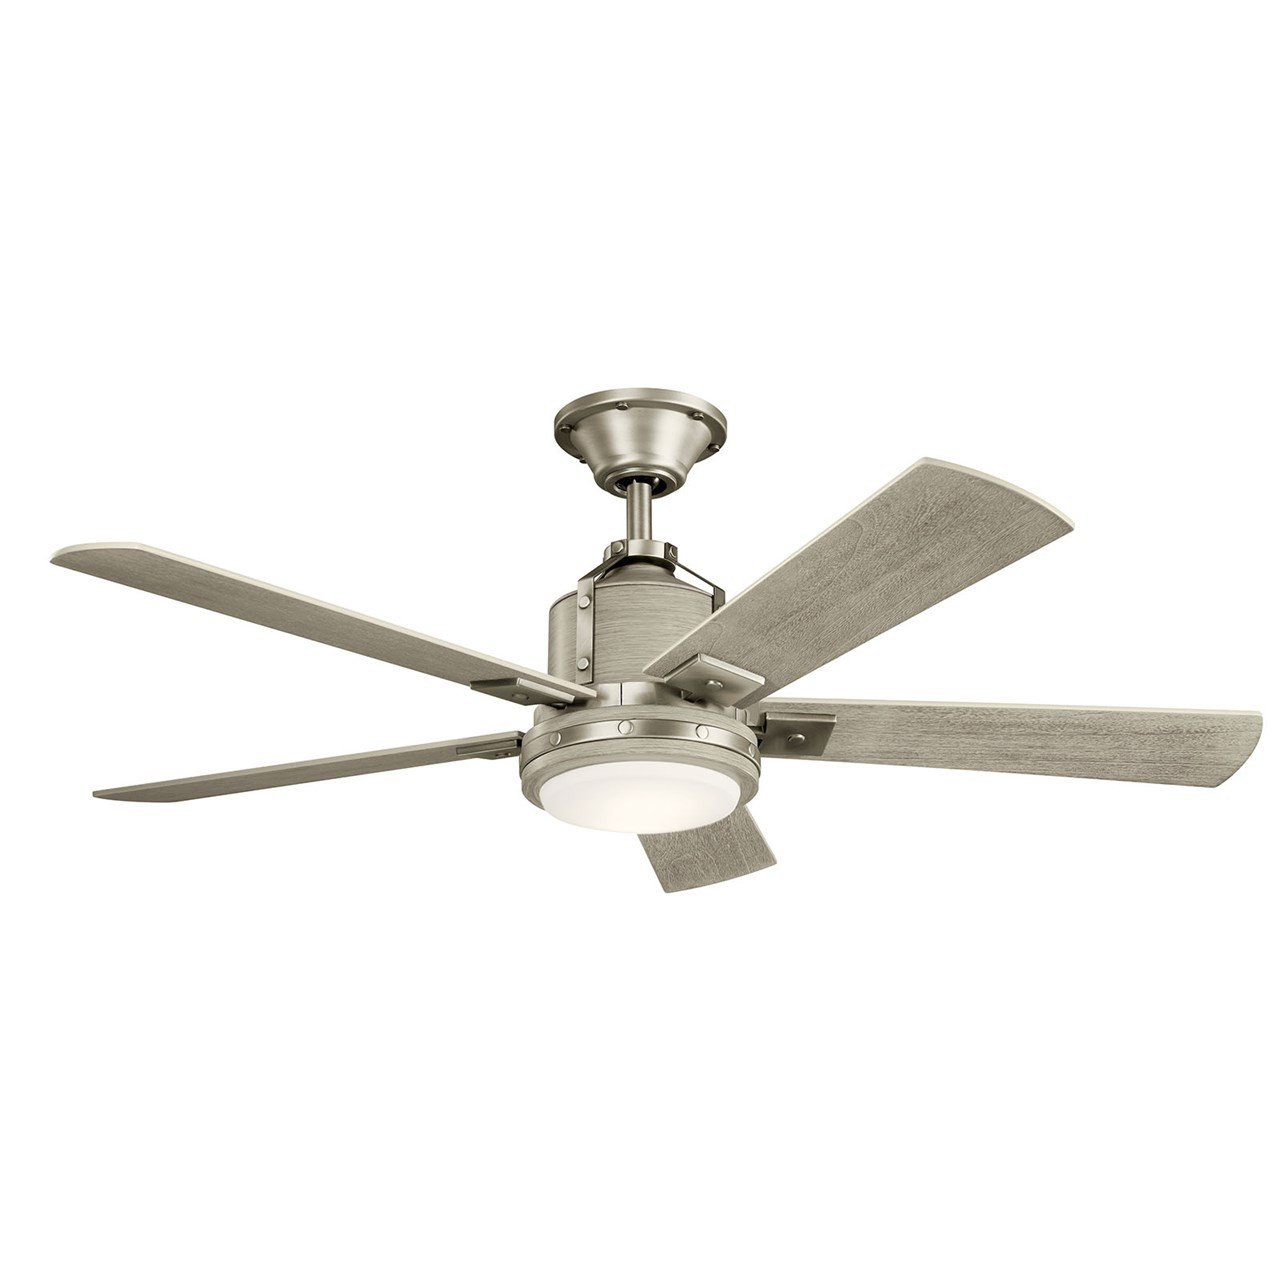 "Master Bedroom Ceiling Fans Elegant Colerne™ Led 52"" Fan Brushed Nickel"